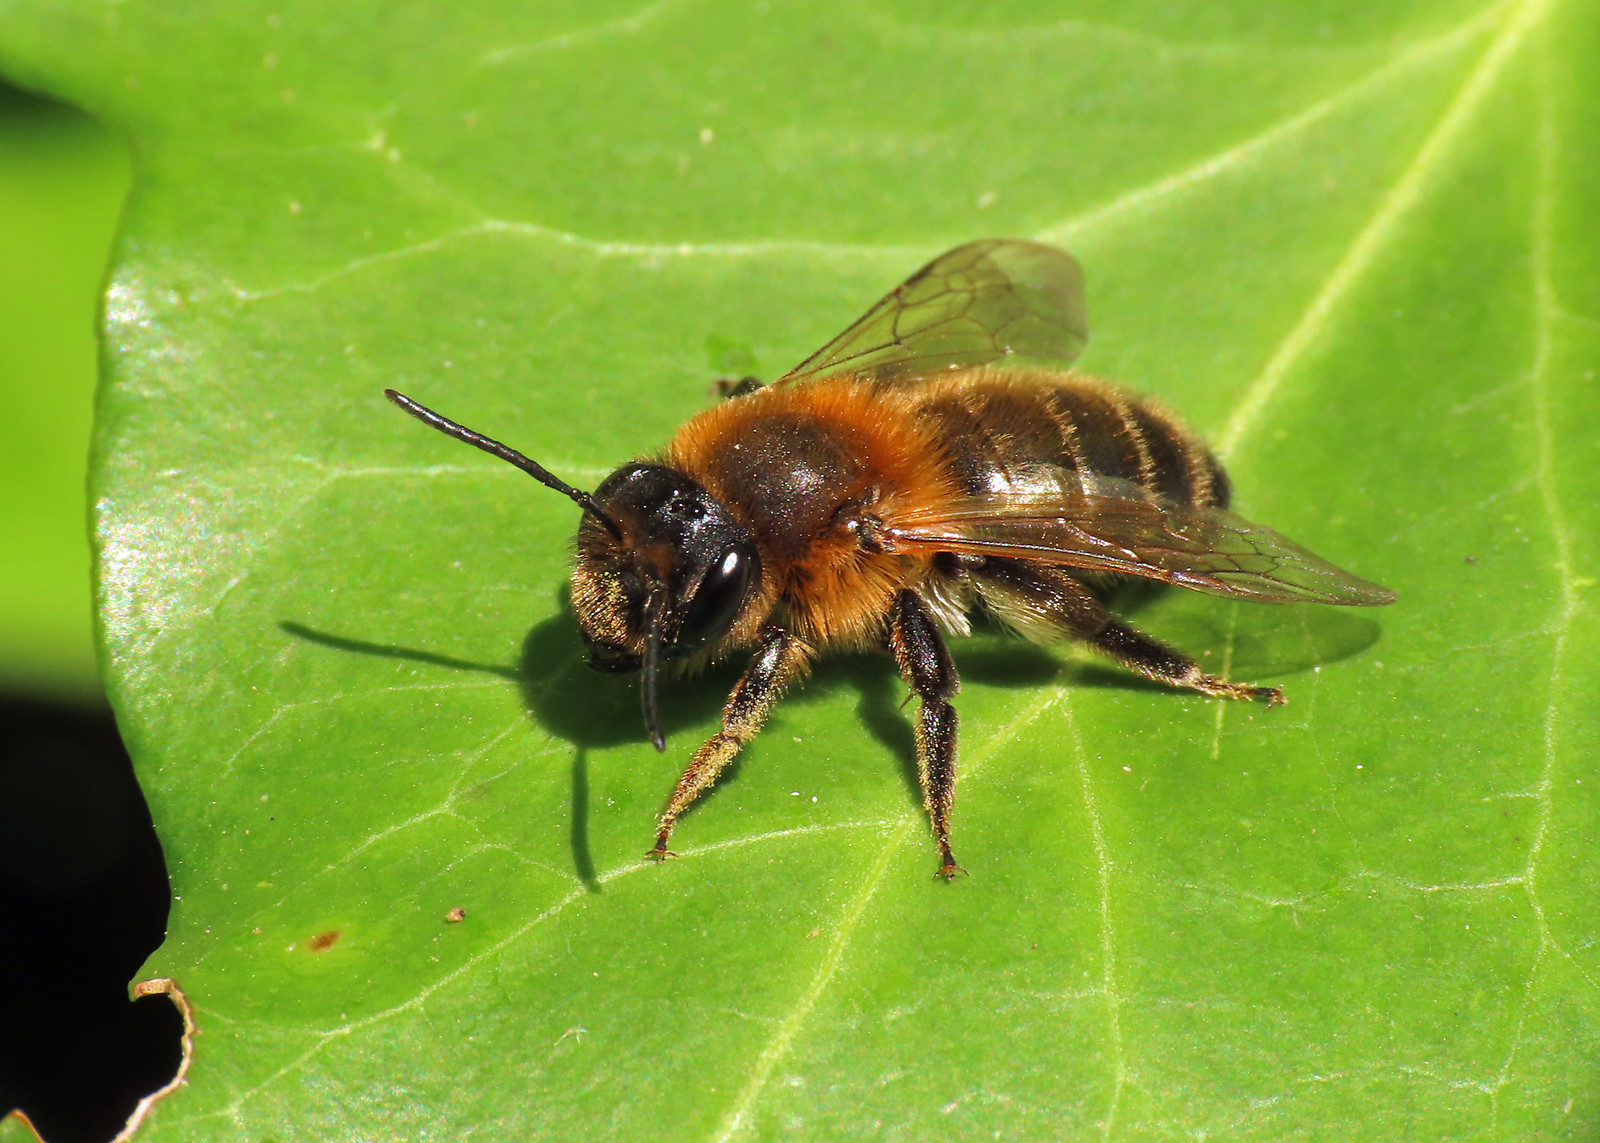 Andrena scotica - Chocolate Mining Bee